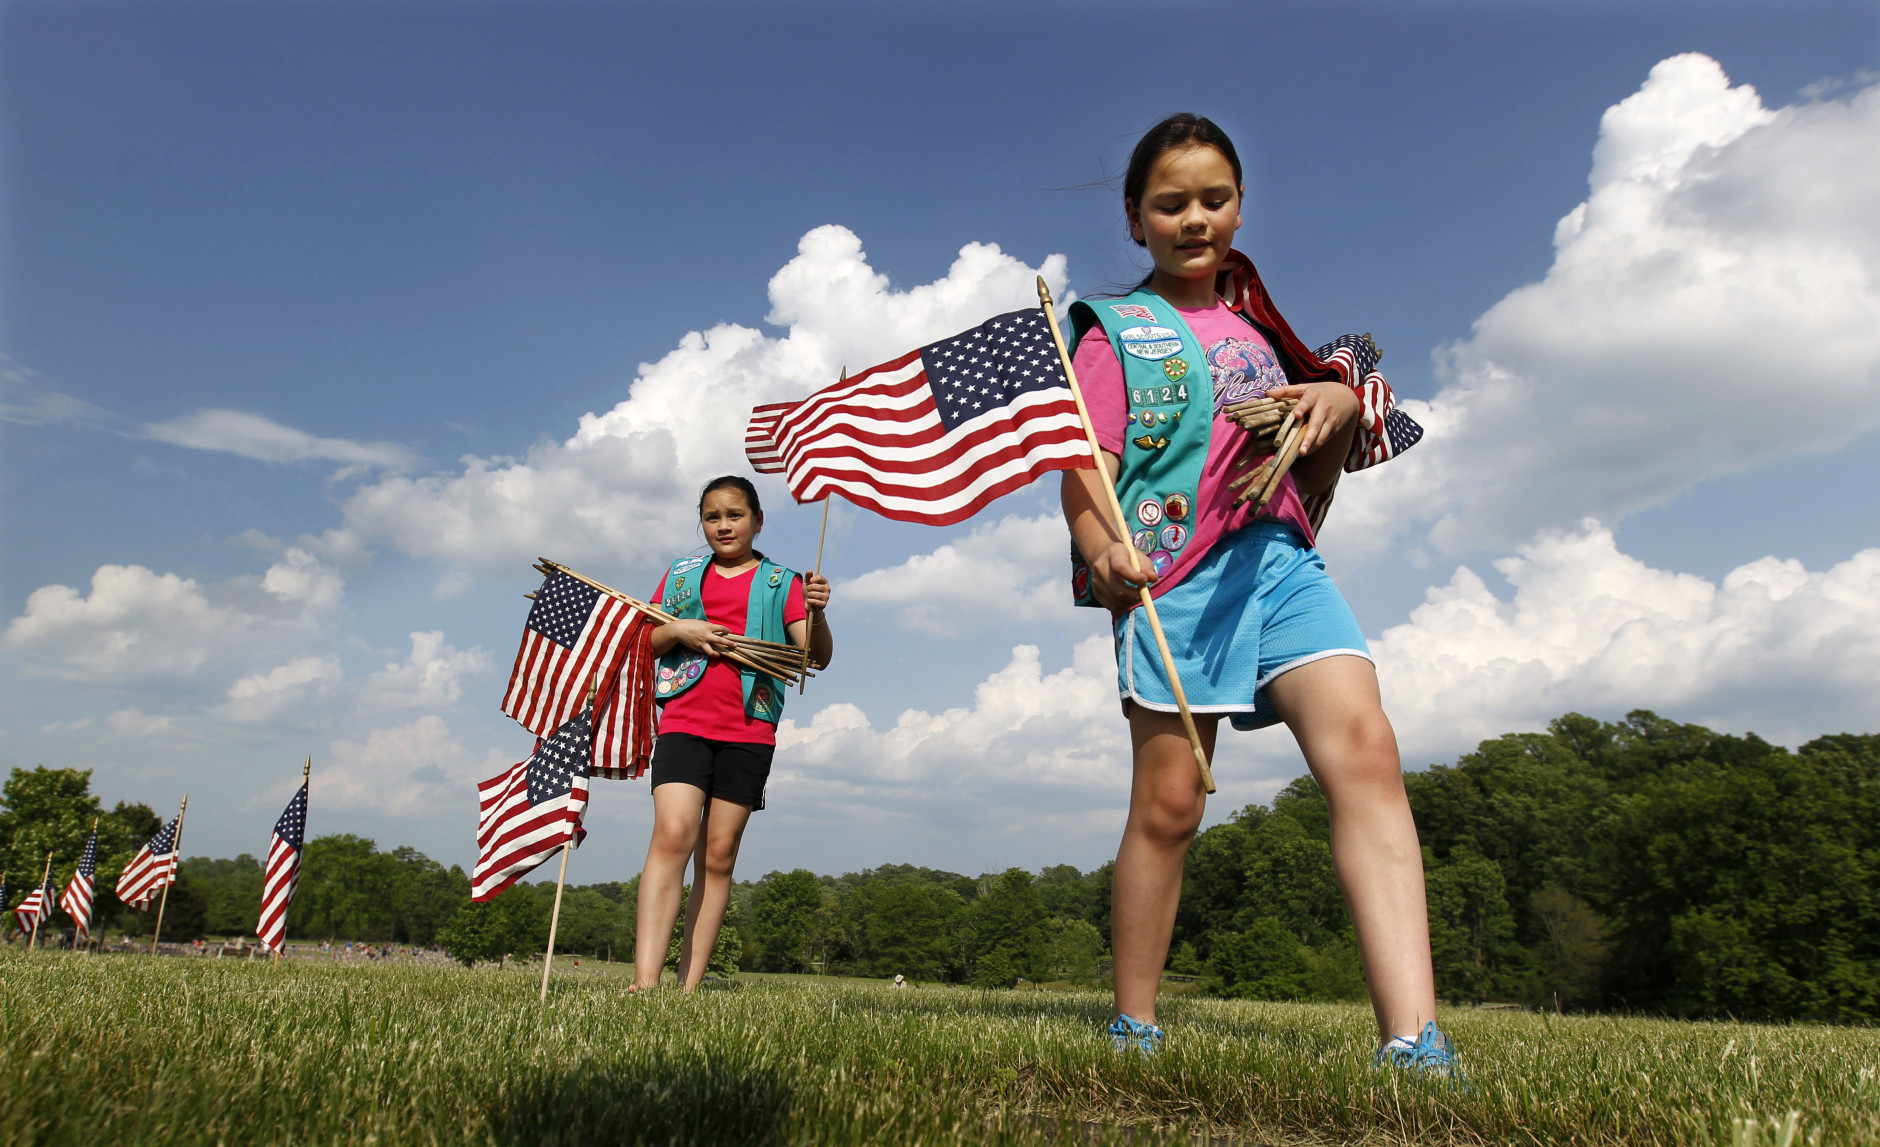 Twin Girl Scouts Sarah and Megan Lontoc, 10, place flags as the scouts placed thousands of flags on veteran's graves at Brig. Gen. William C. Doyle Veterans Memorial Cemetery in honor of Memorial Day, Friday, May 27, 2016, in Wrightstown N.J. (AP Photo/Mel Evans)